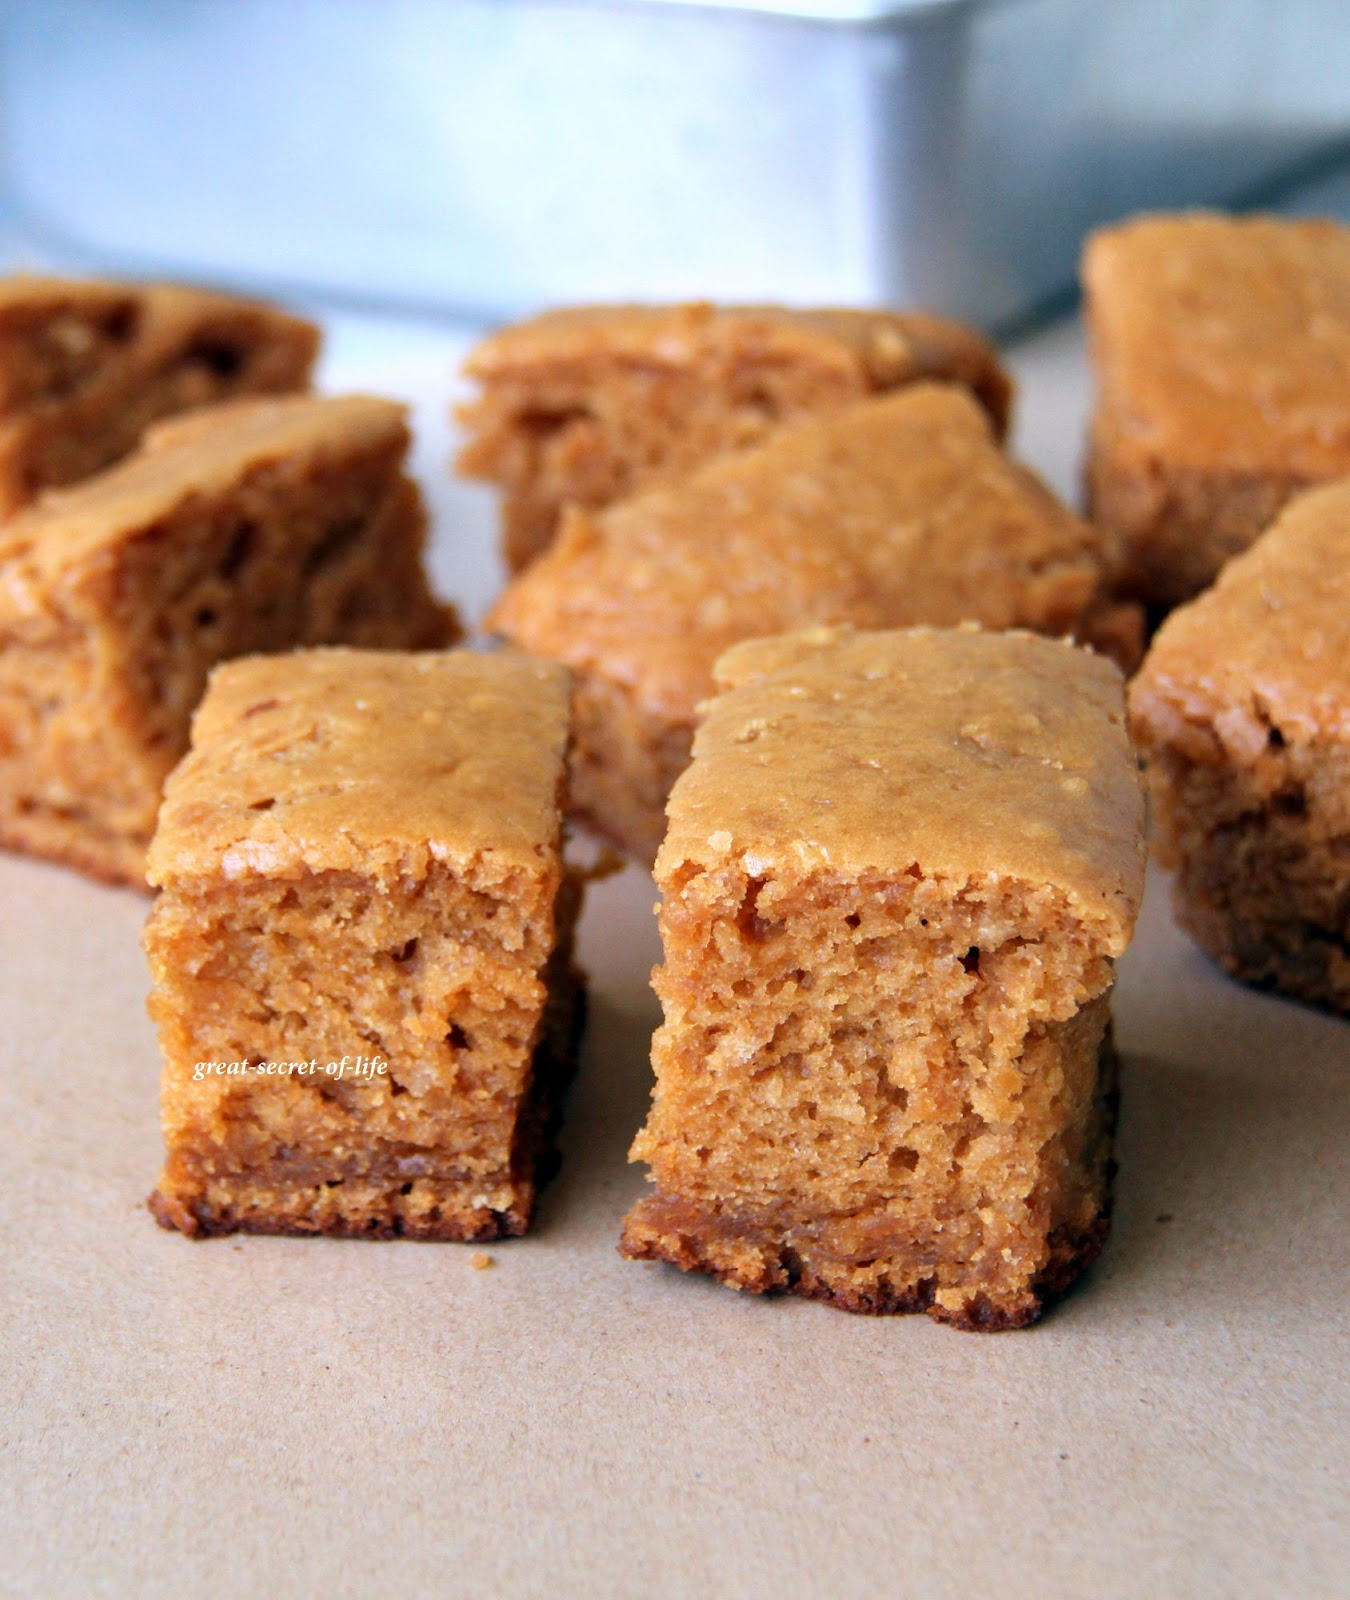 Download image Dulce De Leche Cake PC, Android, iPhone and iPad ...